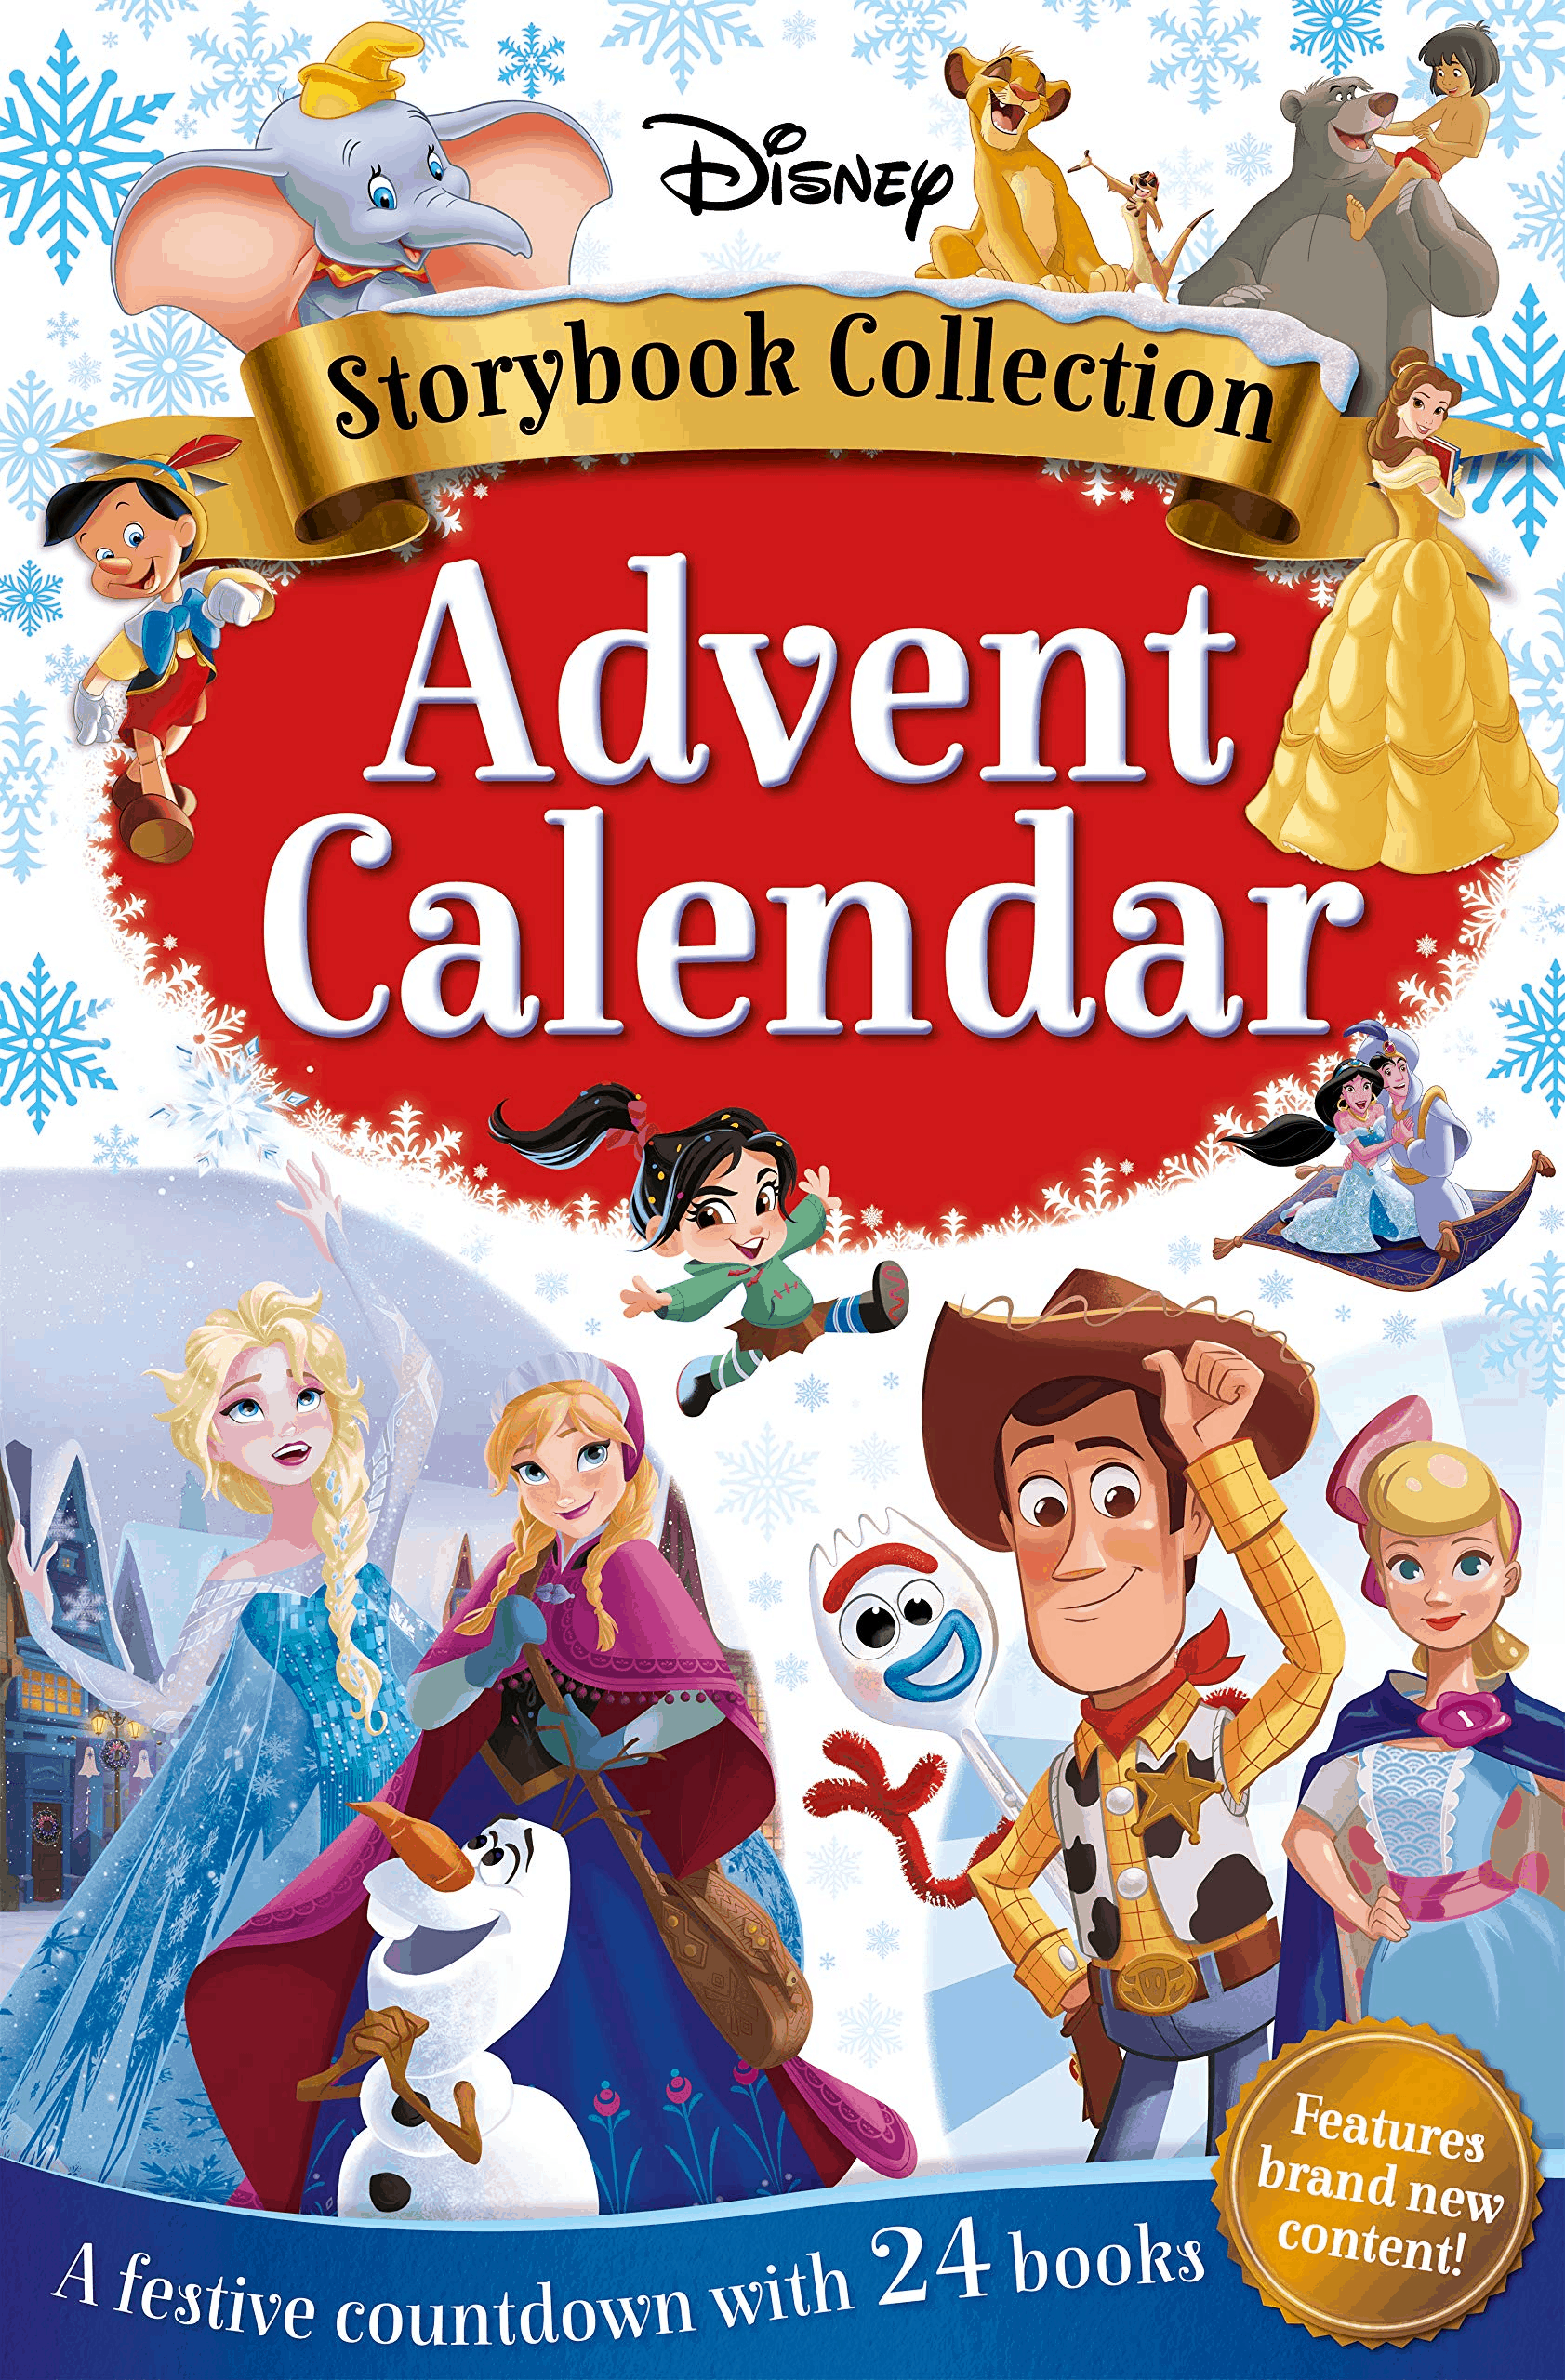 2019 Disney Storybook Advent Calendar Available For Pre-Order Now!